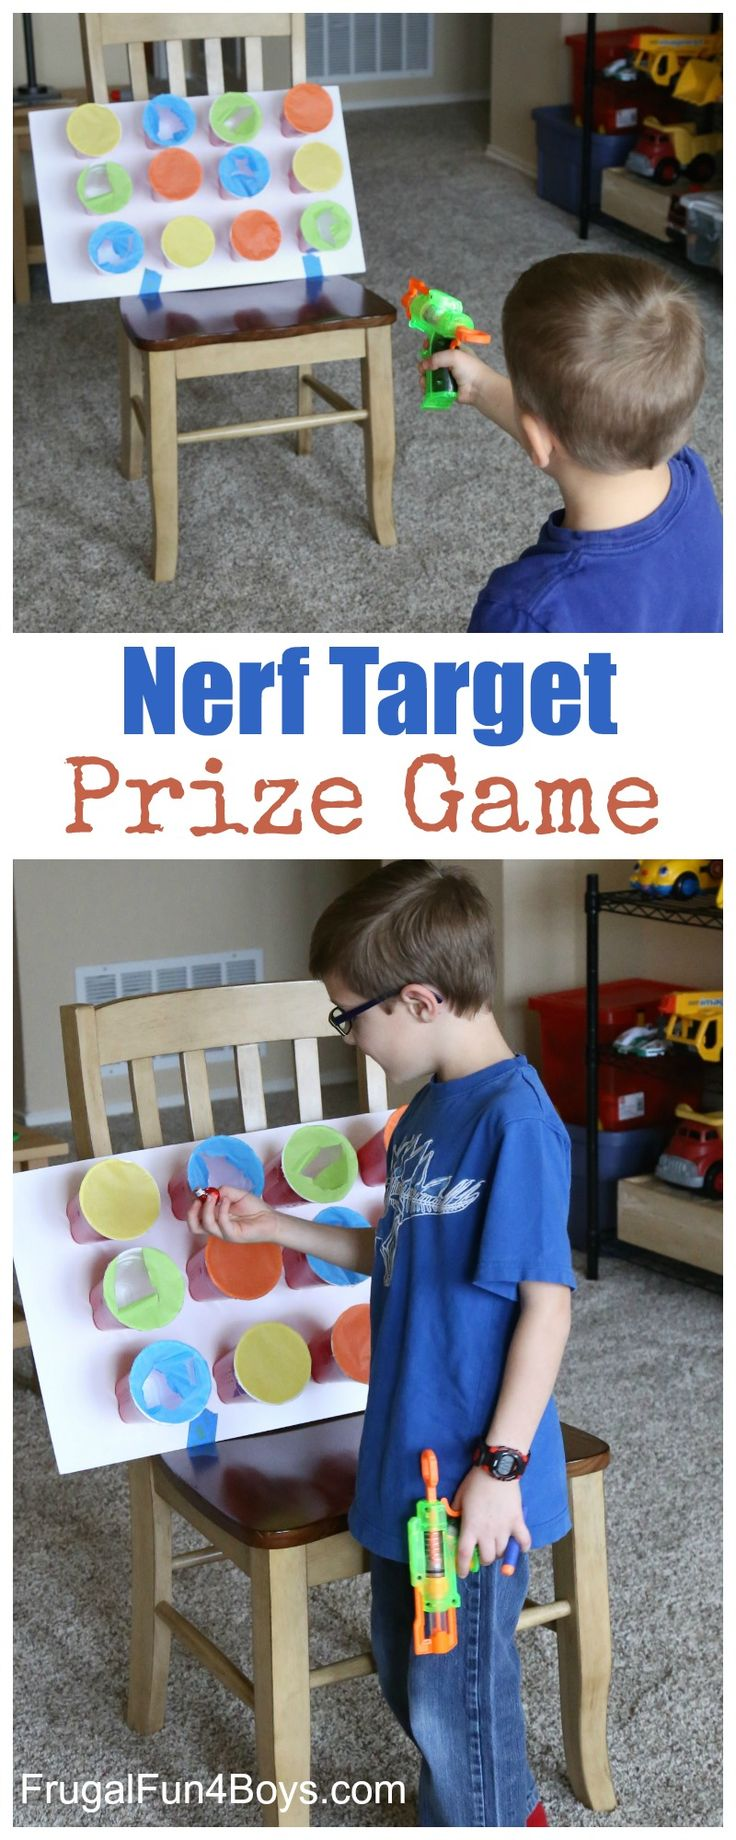 Nerf Target Prize Game - Hide prizes in the cups, and kids get one when the shoot through the paper! Fun party game.